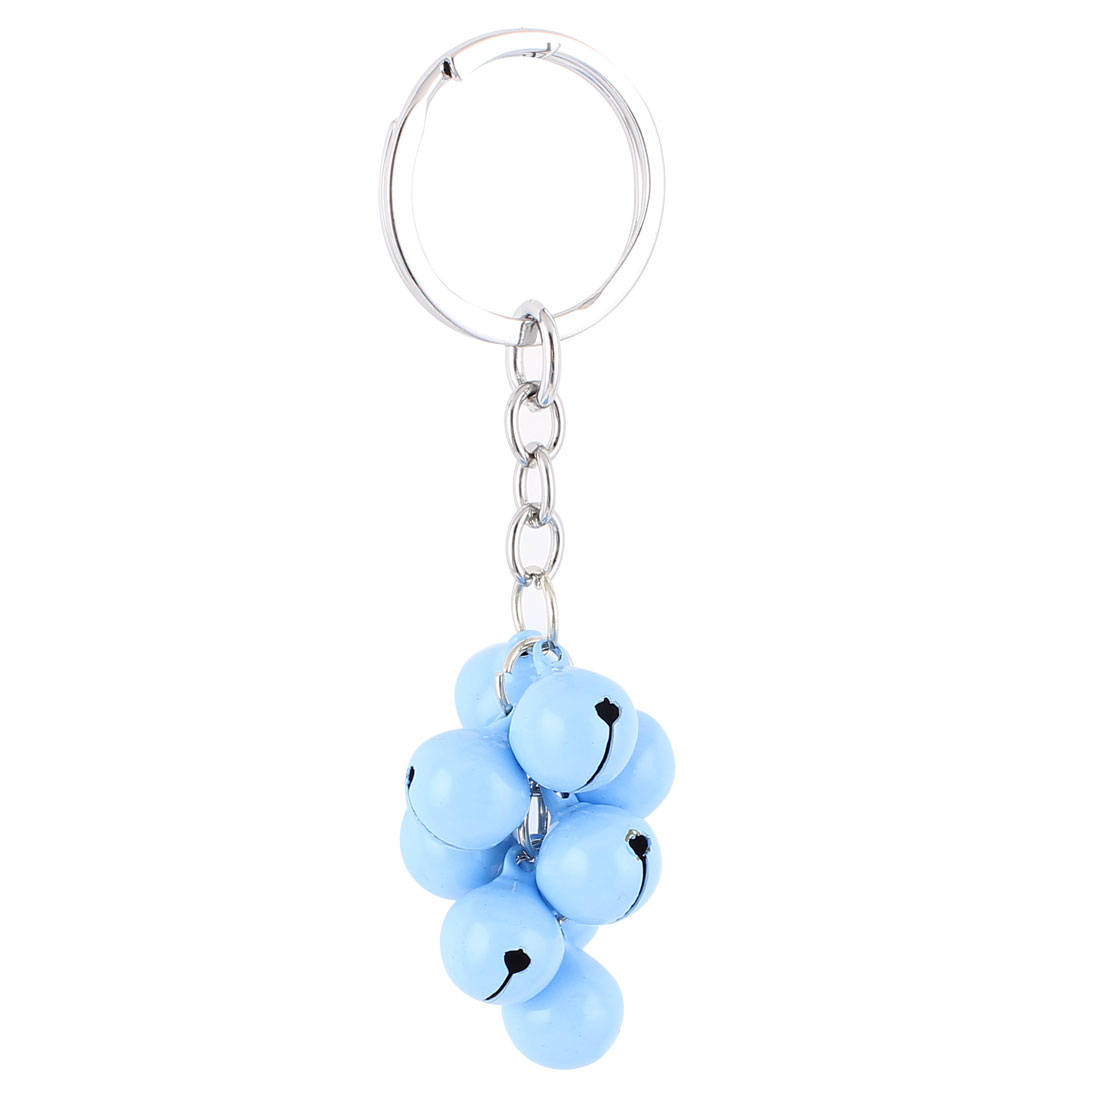 Sky Blue Metal Bells Pendant Keyring Keychain Key Chain Hanging Purse Bag Decoration Gift